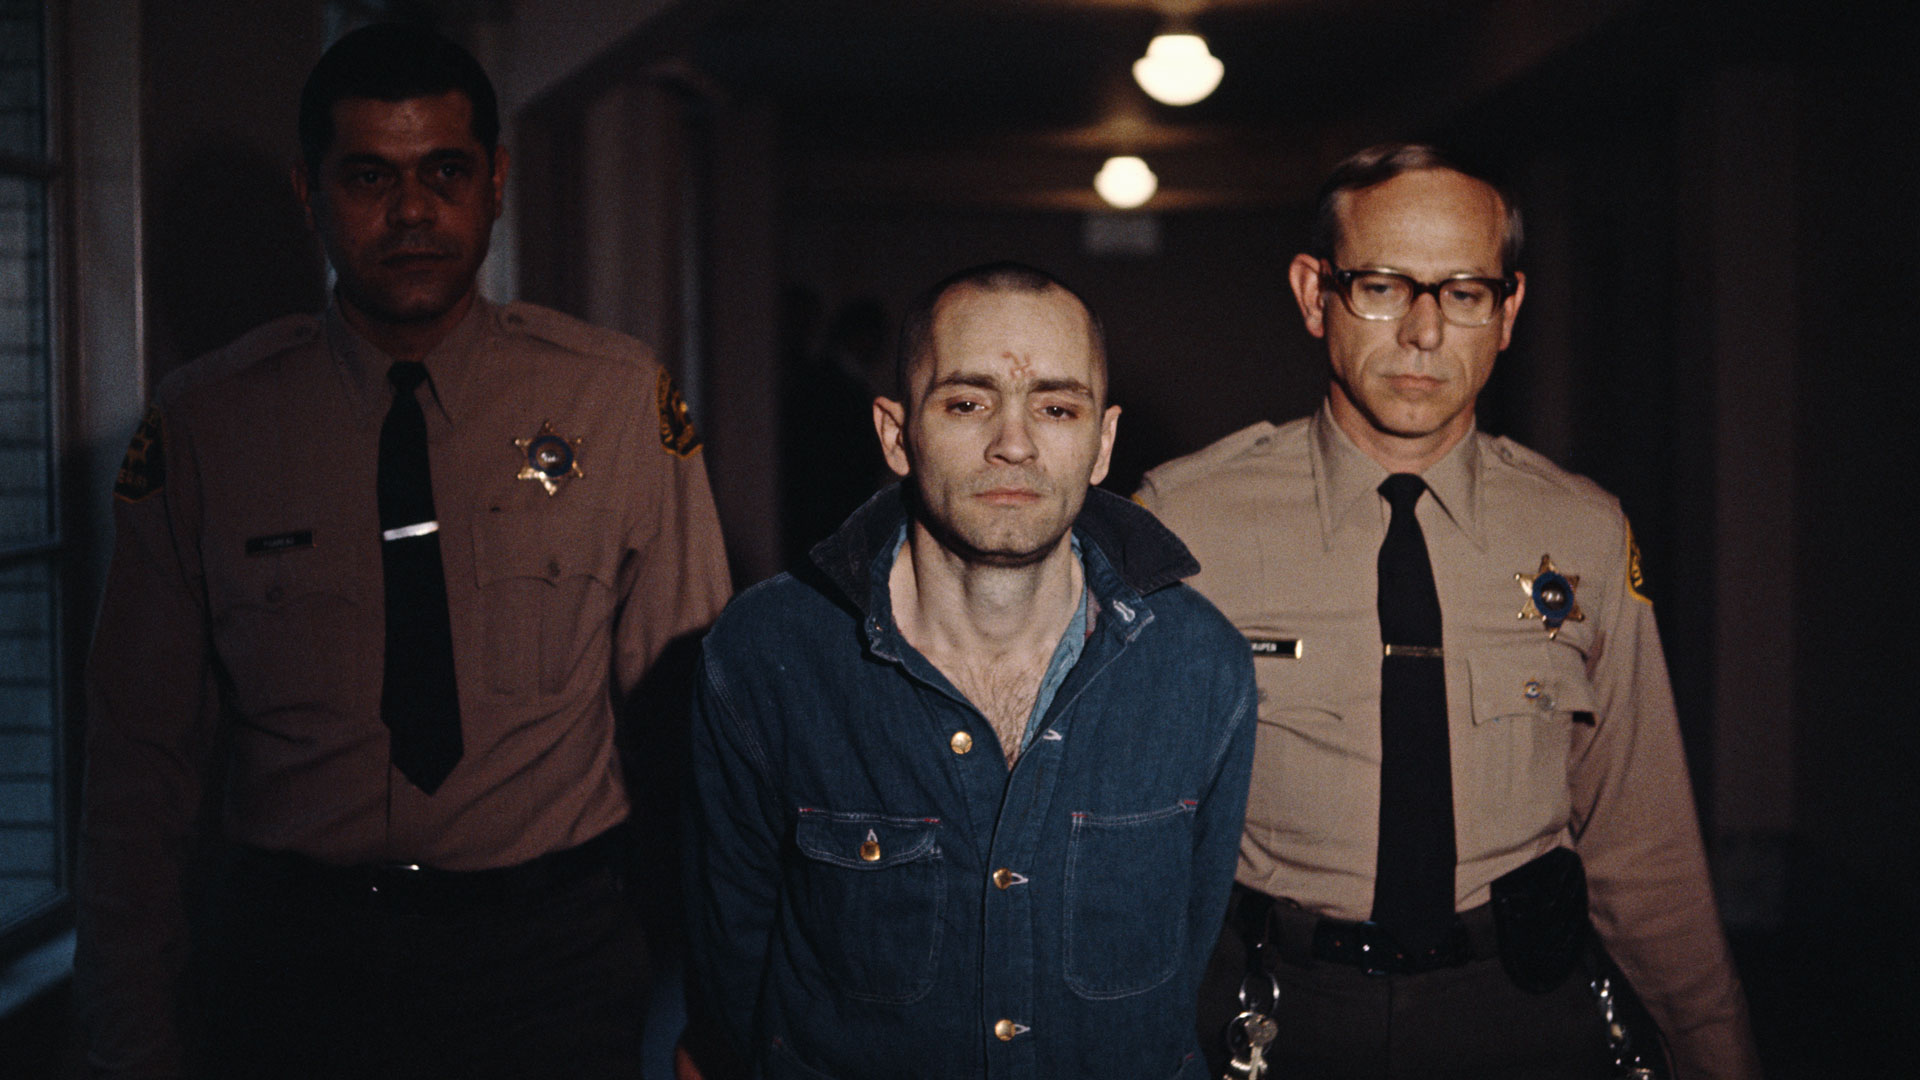 Charles Manson Would Have Made a Great Profiler and Other Surprising Insights About the Cult Leader from FBI Investigators